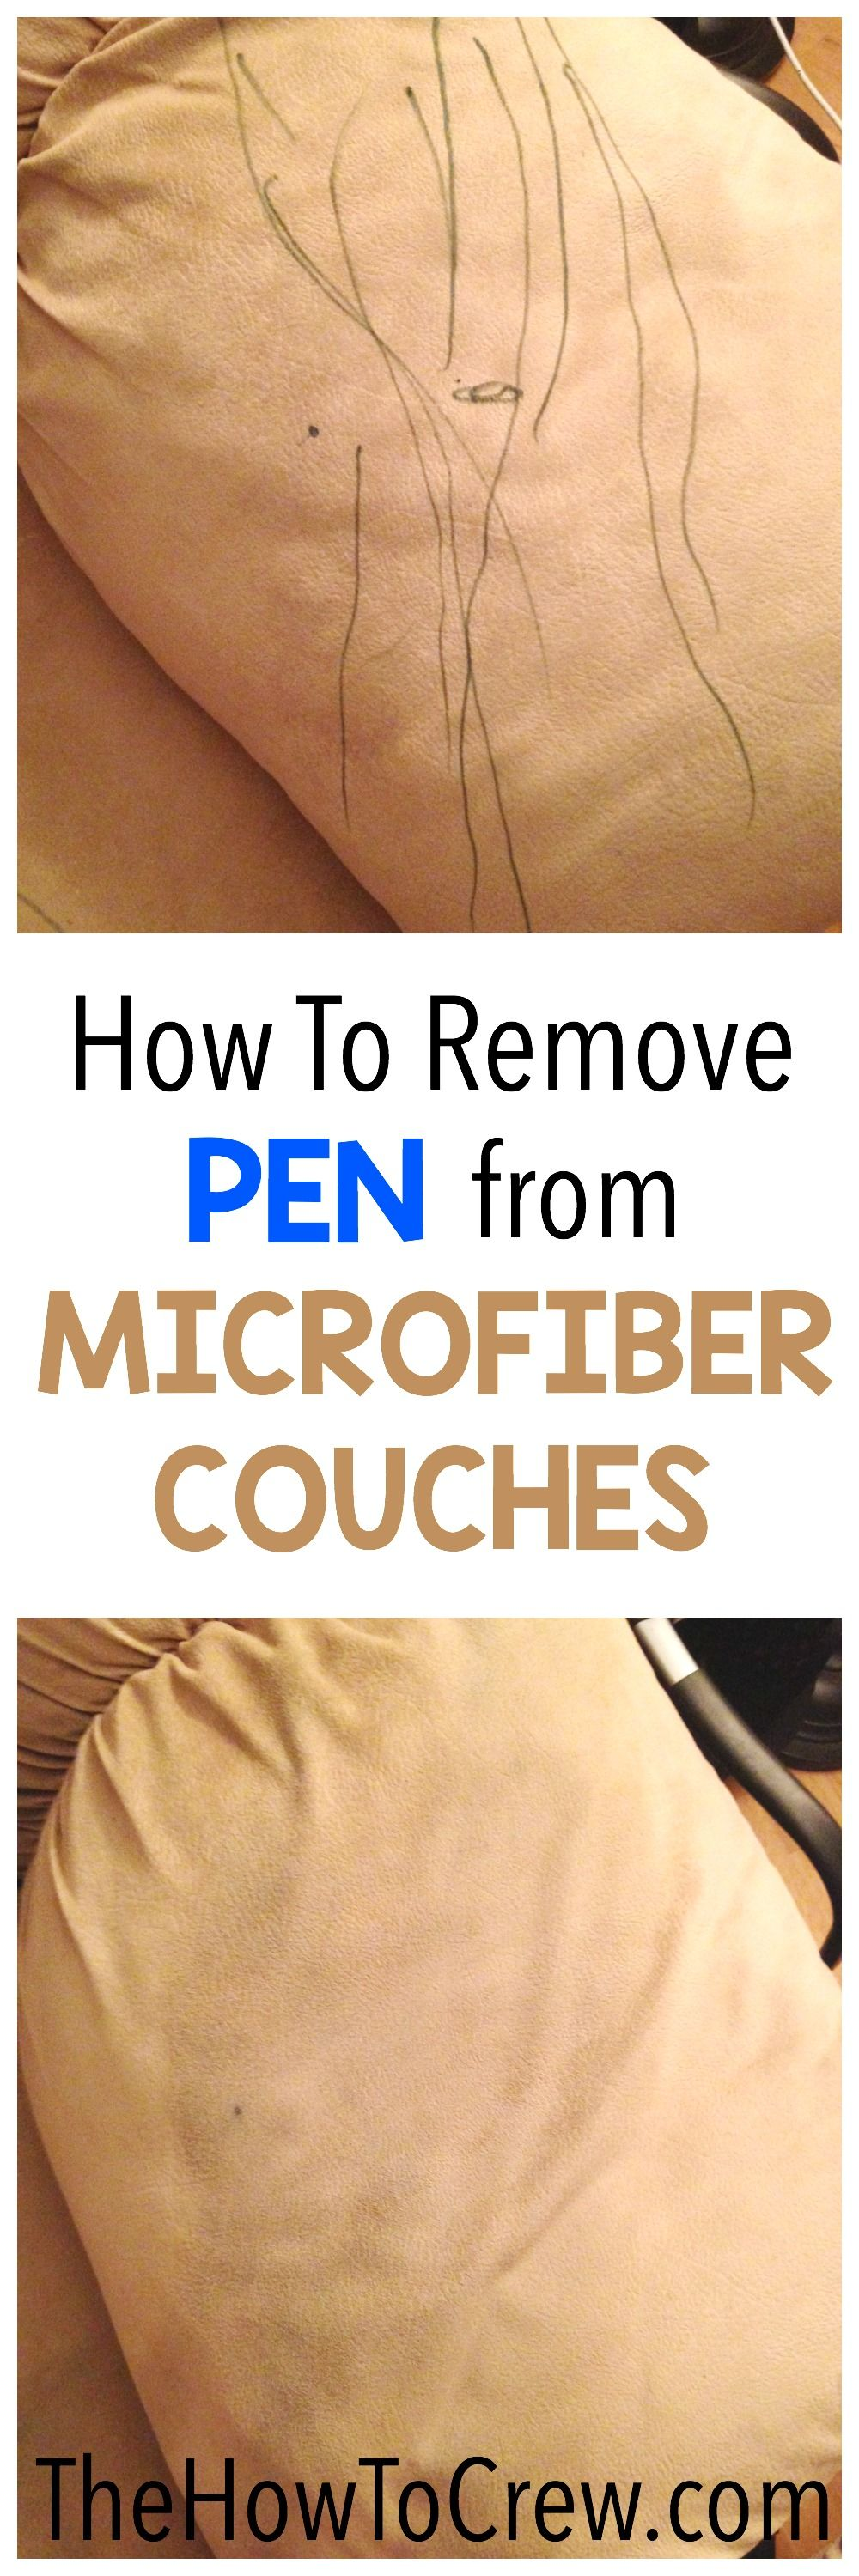 How To Remove Pen From Microfiber Couches On Thehowtocrew